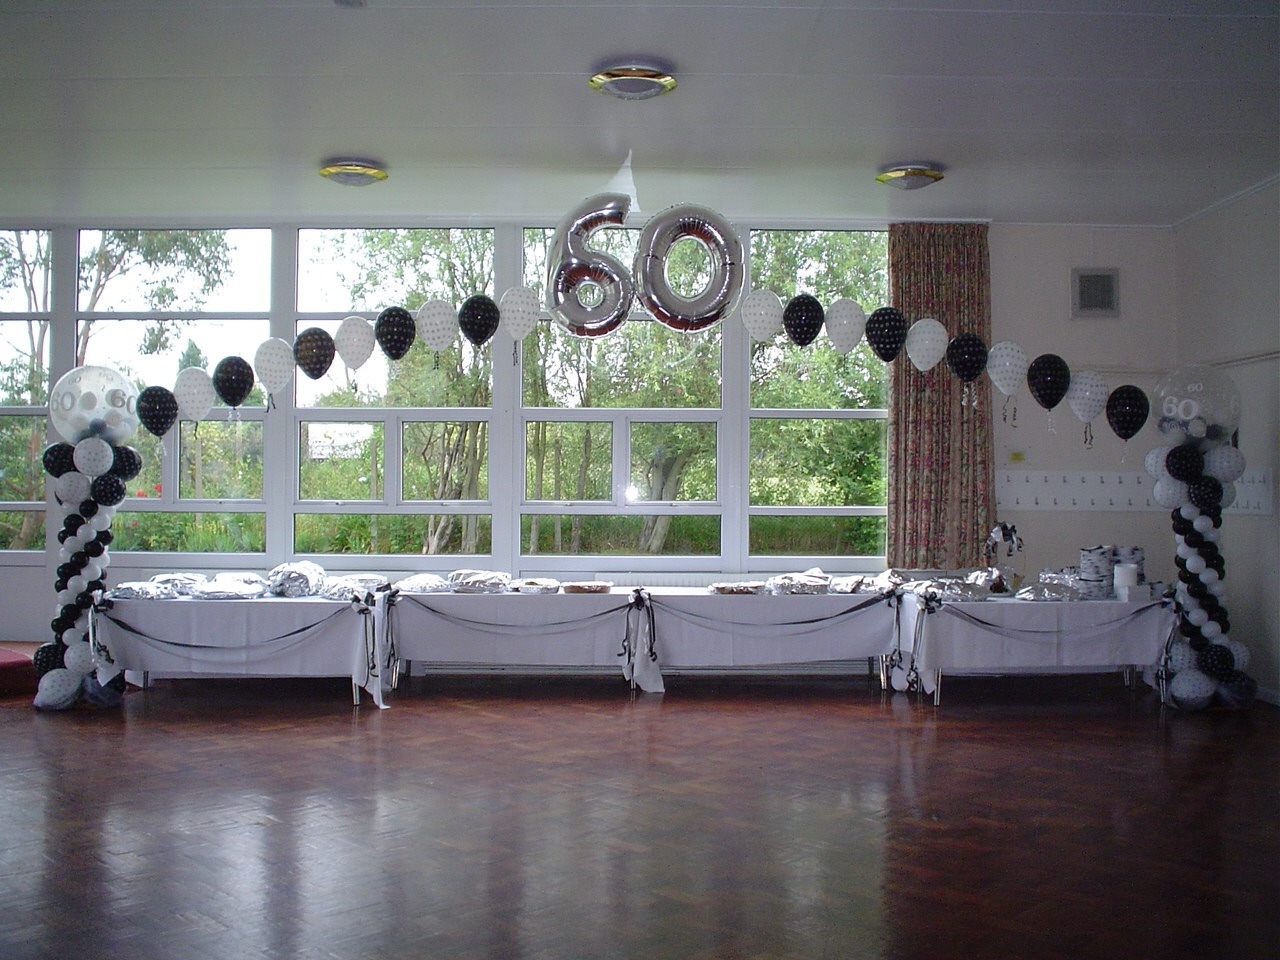 60th birthday color theme ; 60Th-Birthday-Party-Decorations-Ideas-New-Picture-Pics-Of-Cacecaeaeabbecbdabcc-Jpg